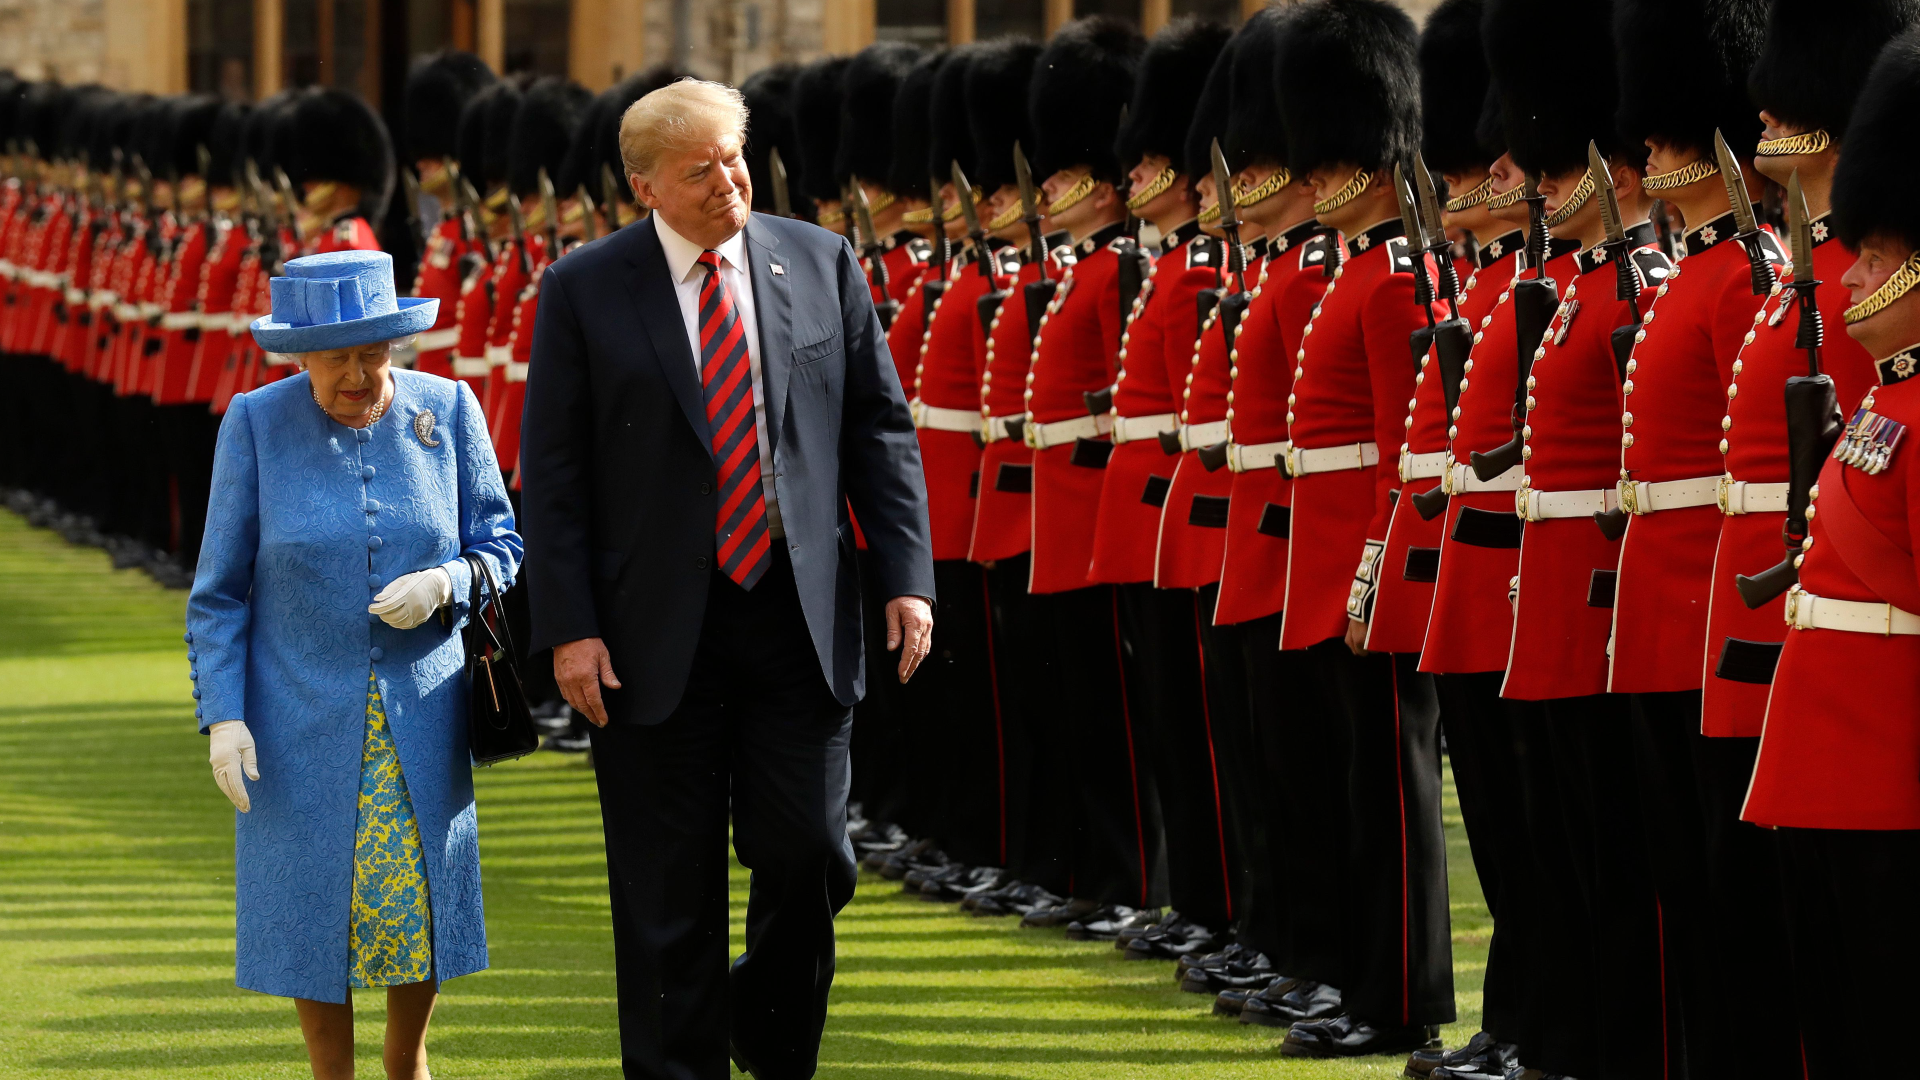 Buckingham Palace has confirmed President Trump will make a state visit to the UK